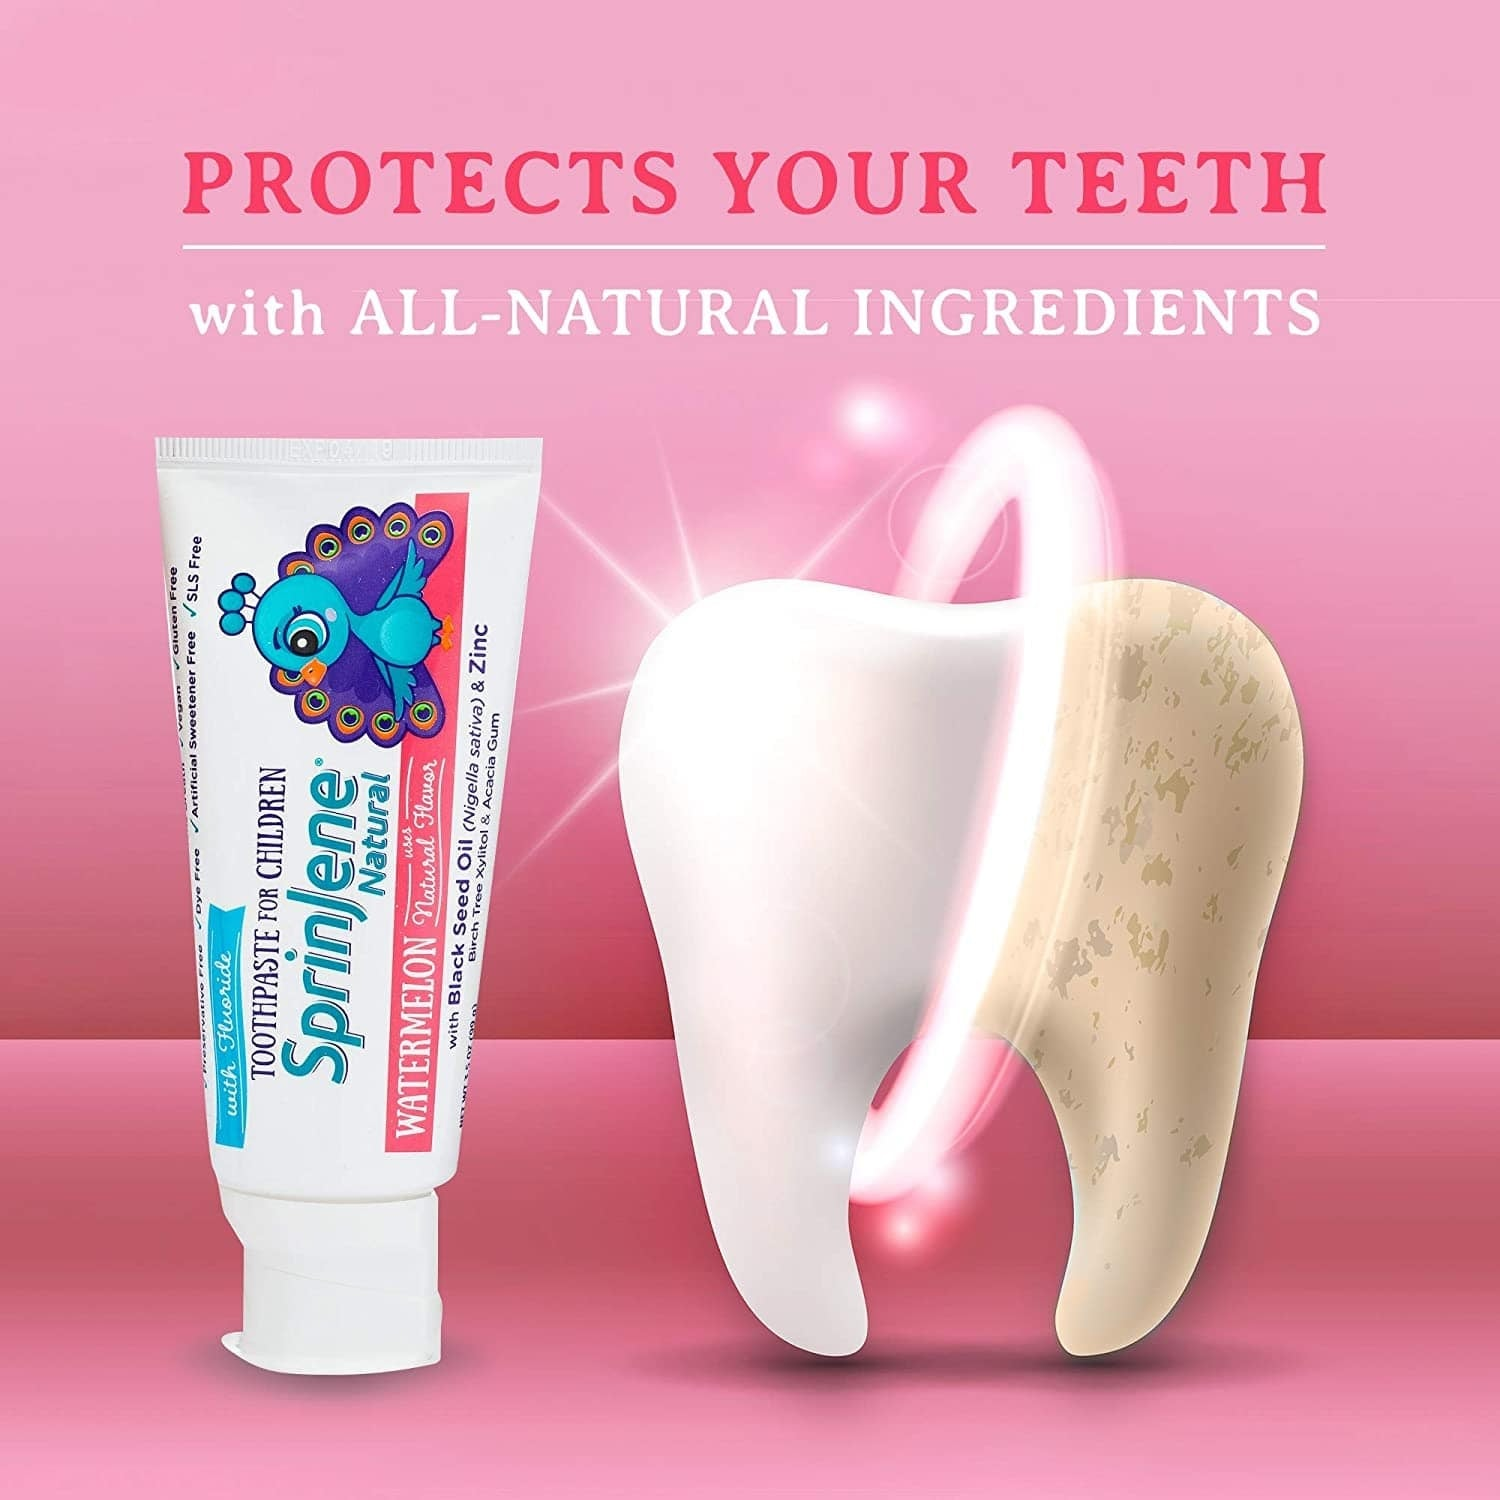 Natural Toothpaste Protects Your Teeth Naturally